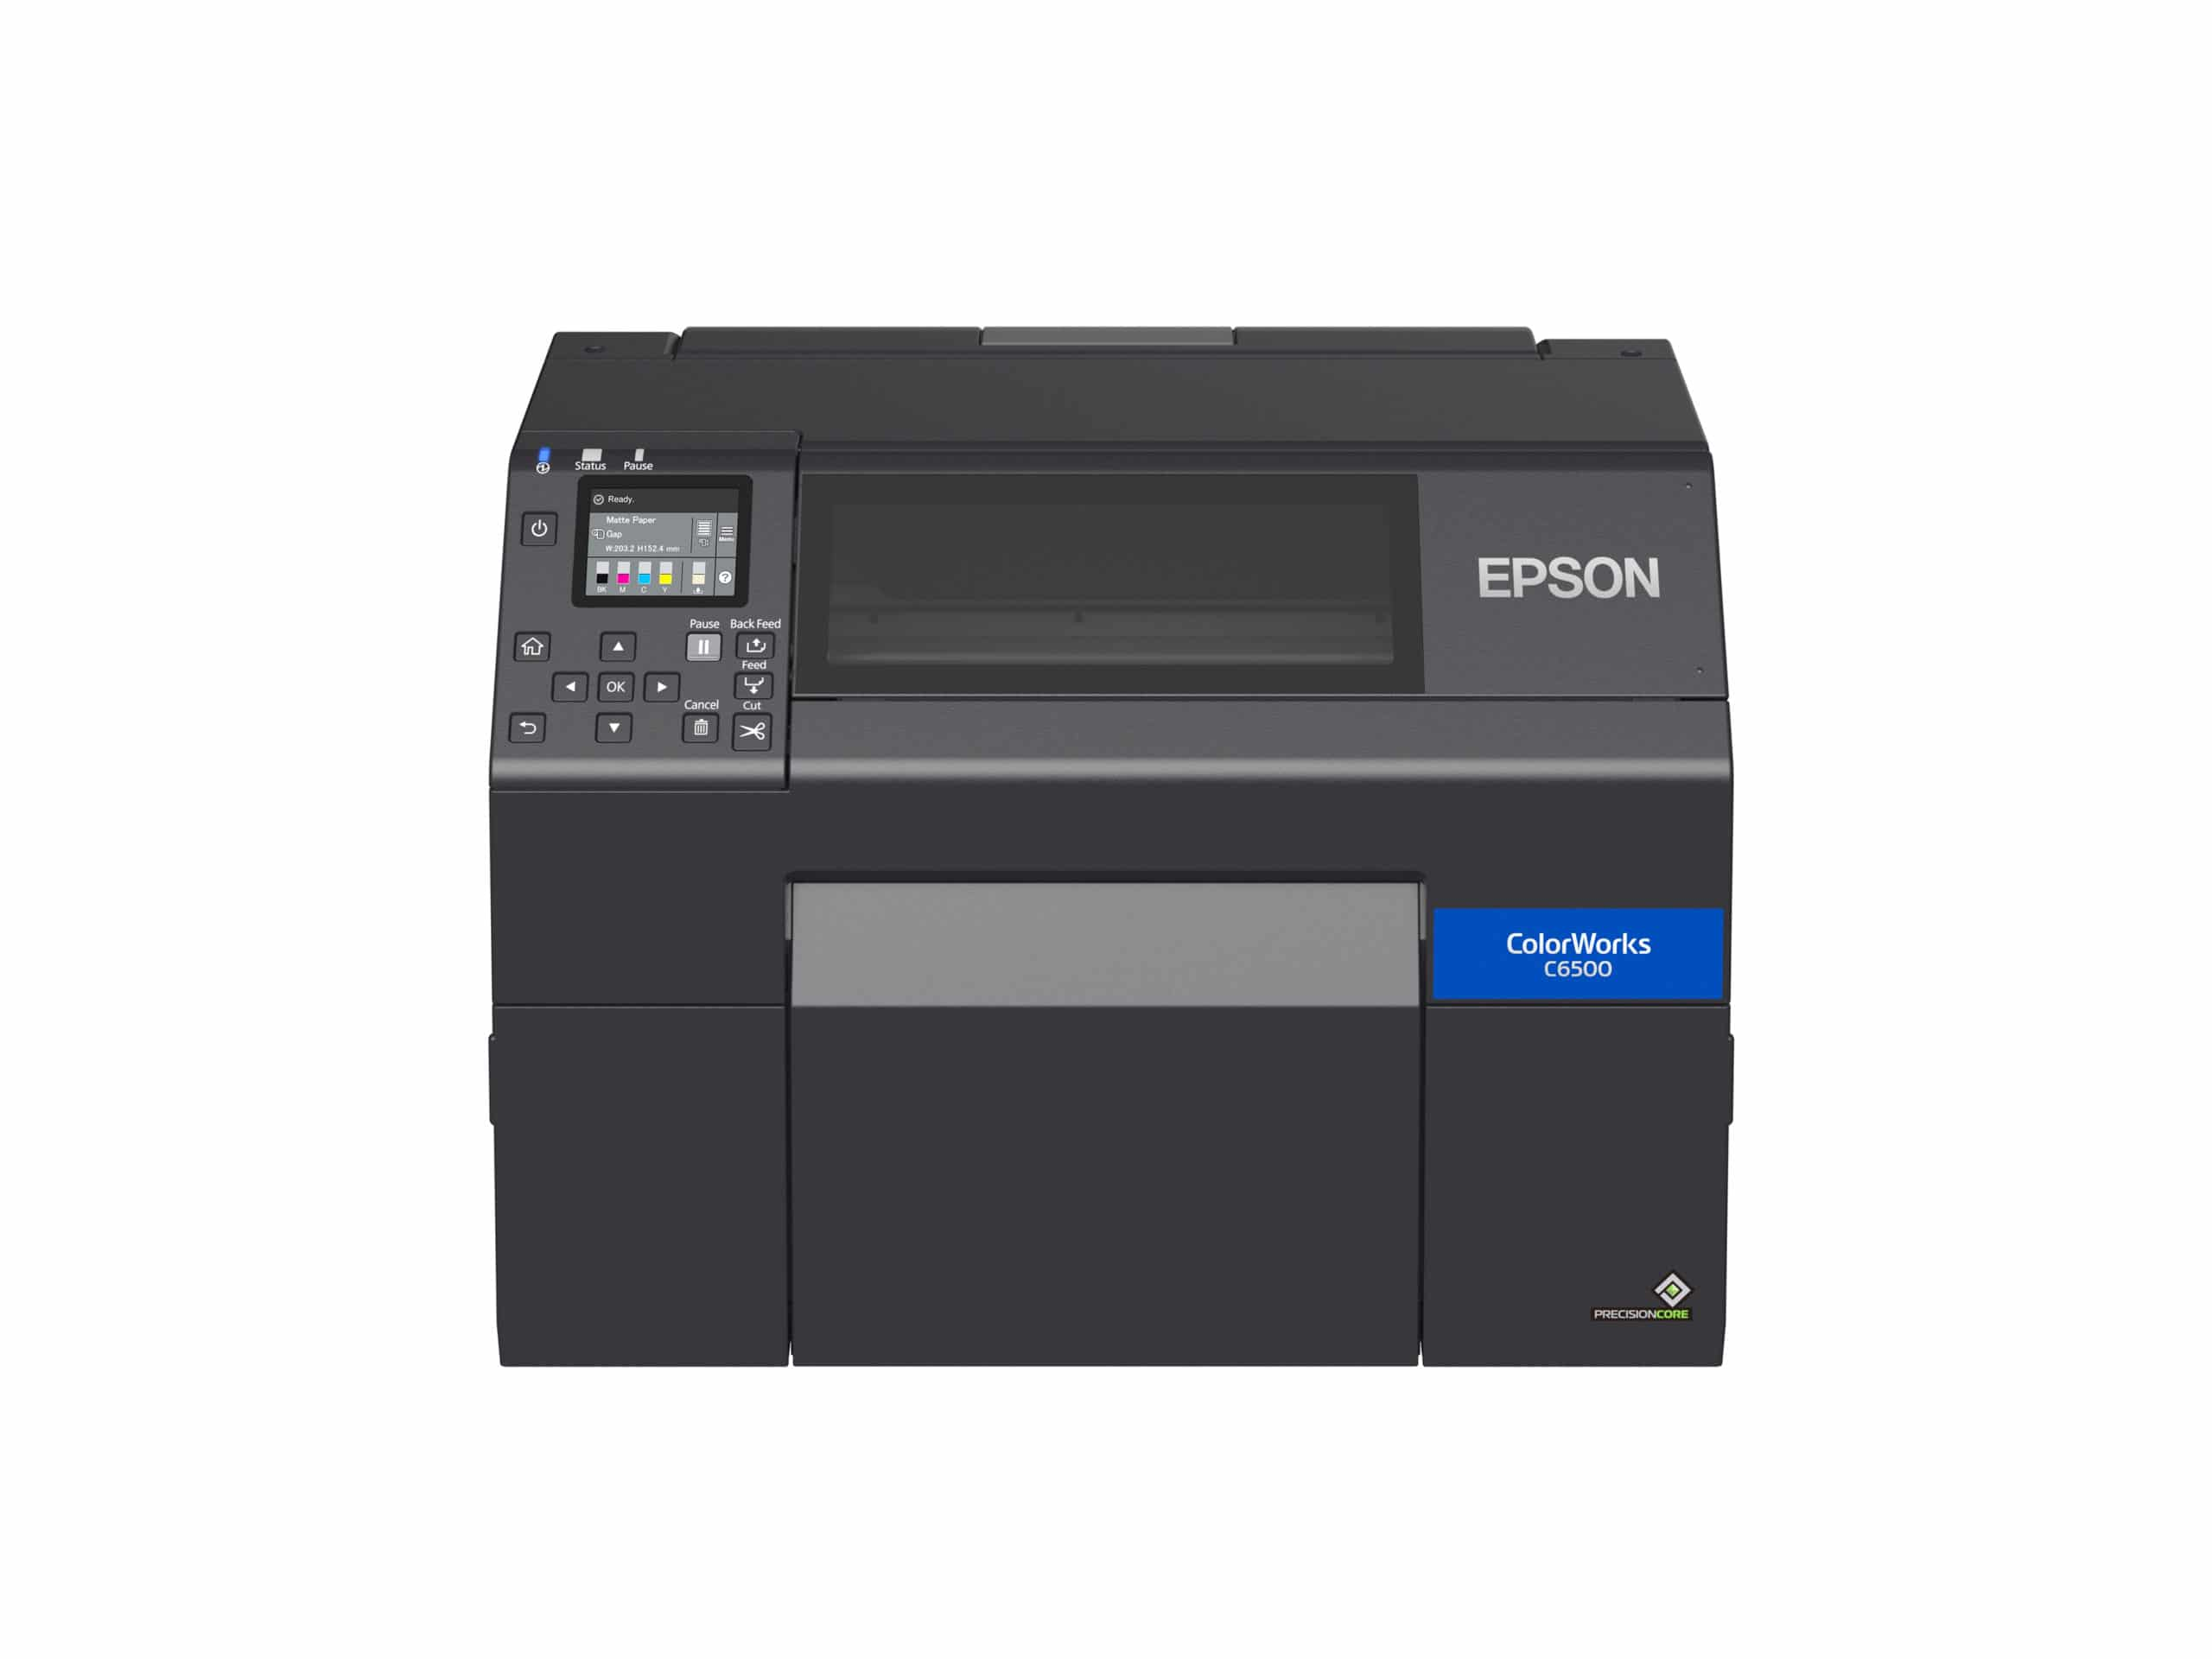 Epson CW-6500A Auto-Cutter